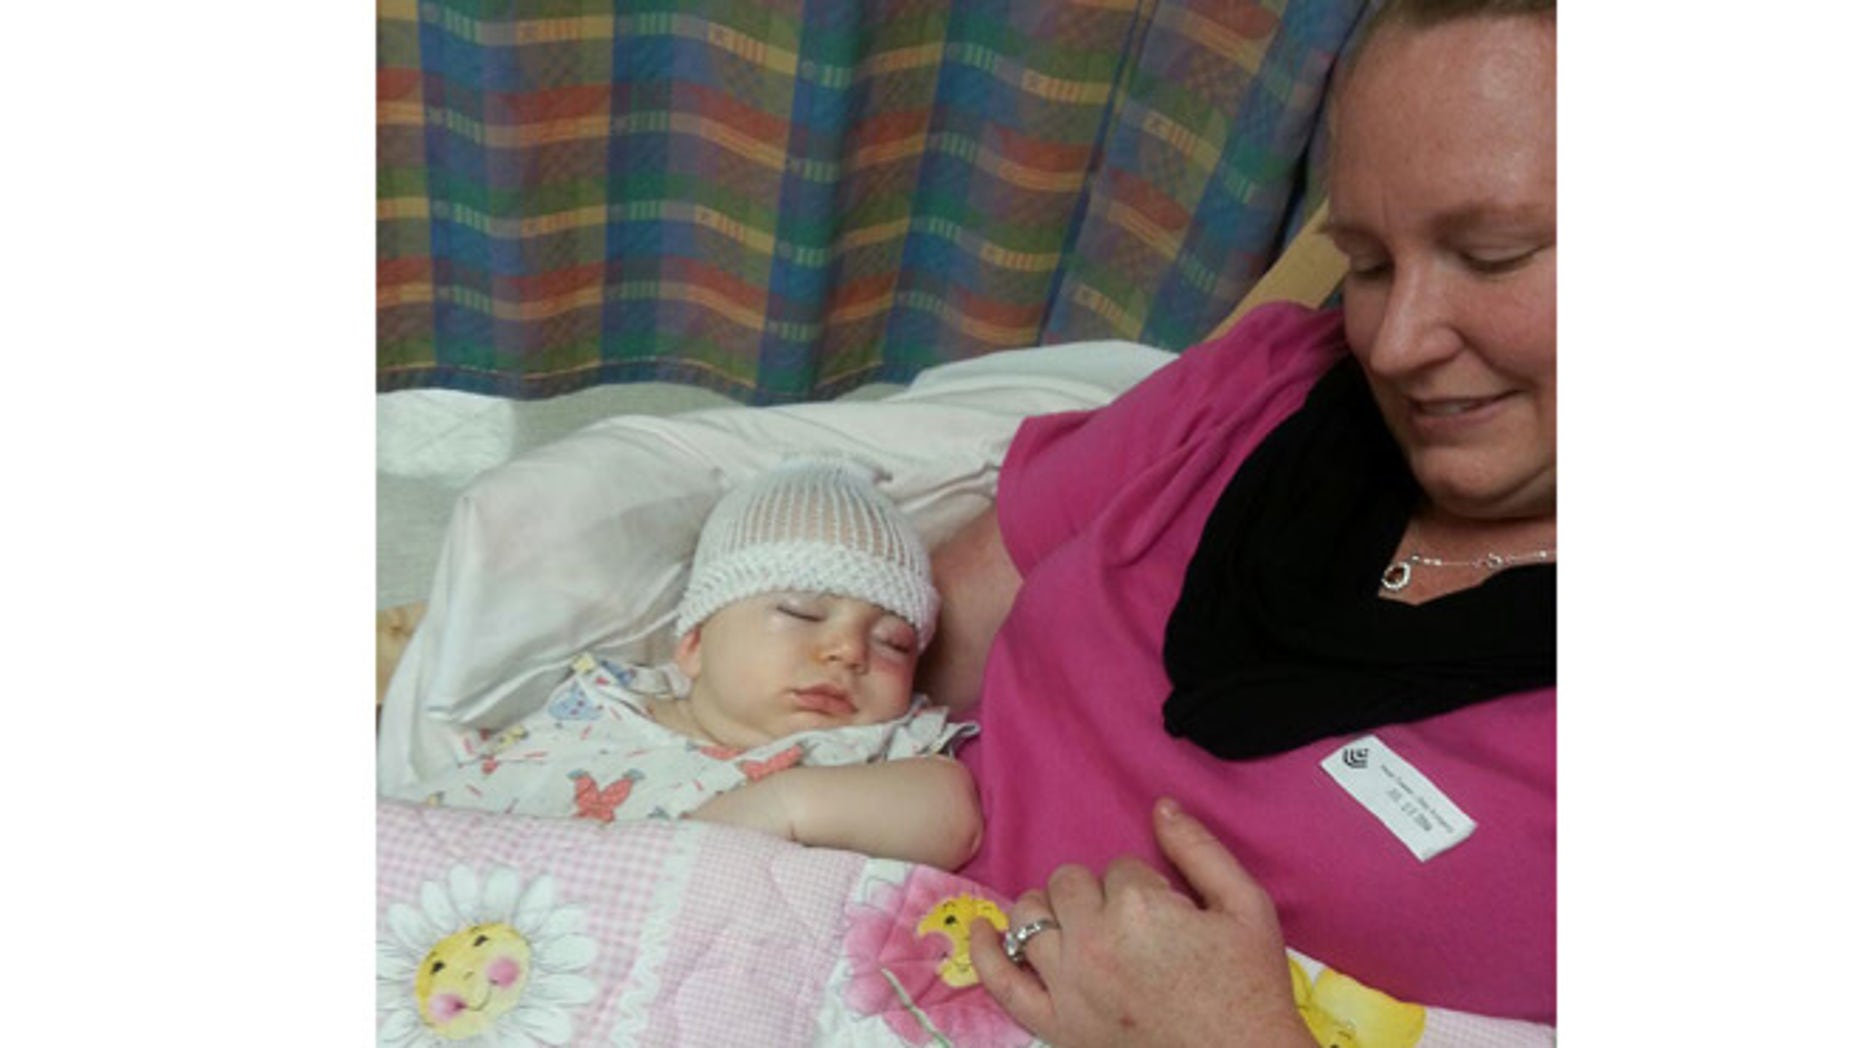 July 12, 2014: Savannah Snodgrass, of Georgetown, Texas, is pictured here recovering after surgery. Courtesy: Tessa Snodgrass